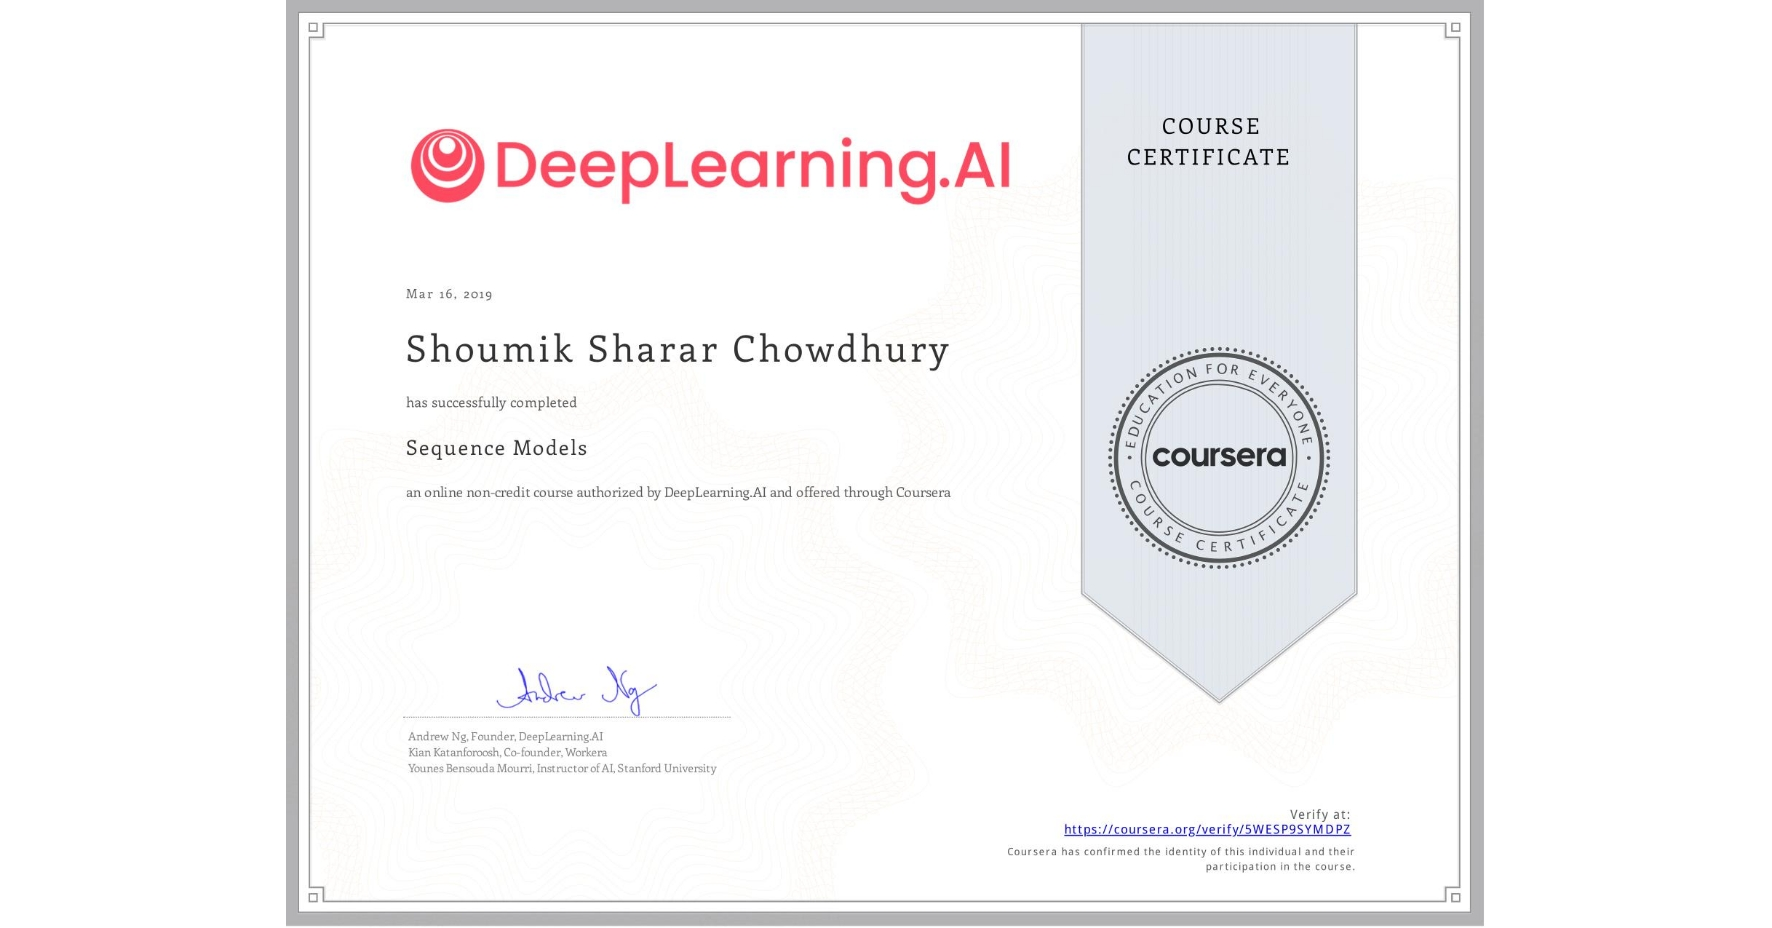 View certificate for Shoumik Sharar Chowdhury, Sequence Models, an online non-credit course authorized by DeepLearning.AI and offered through Coursera